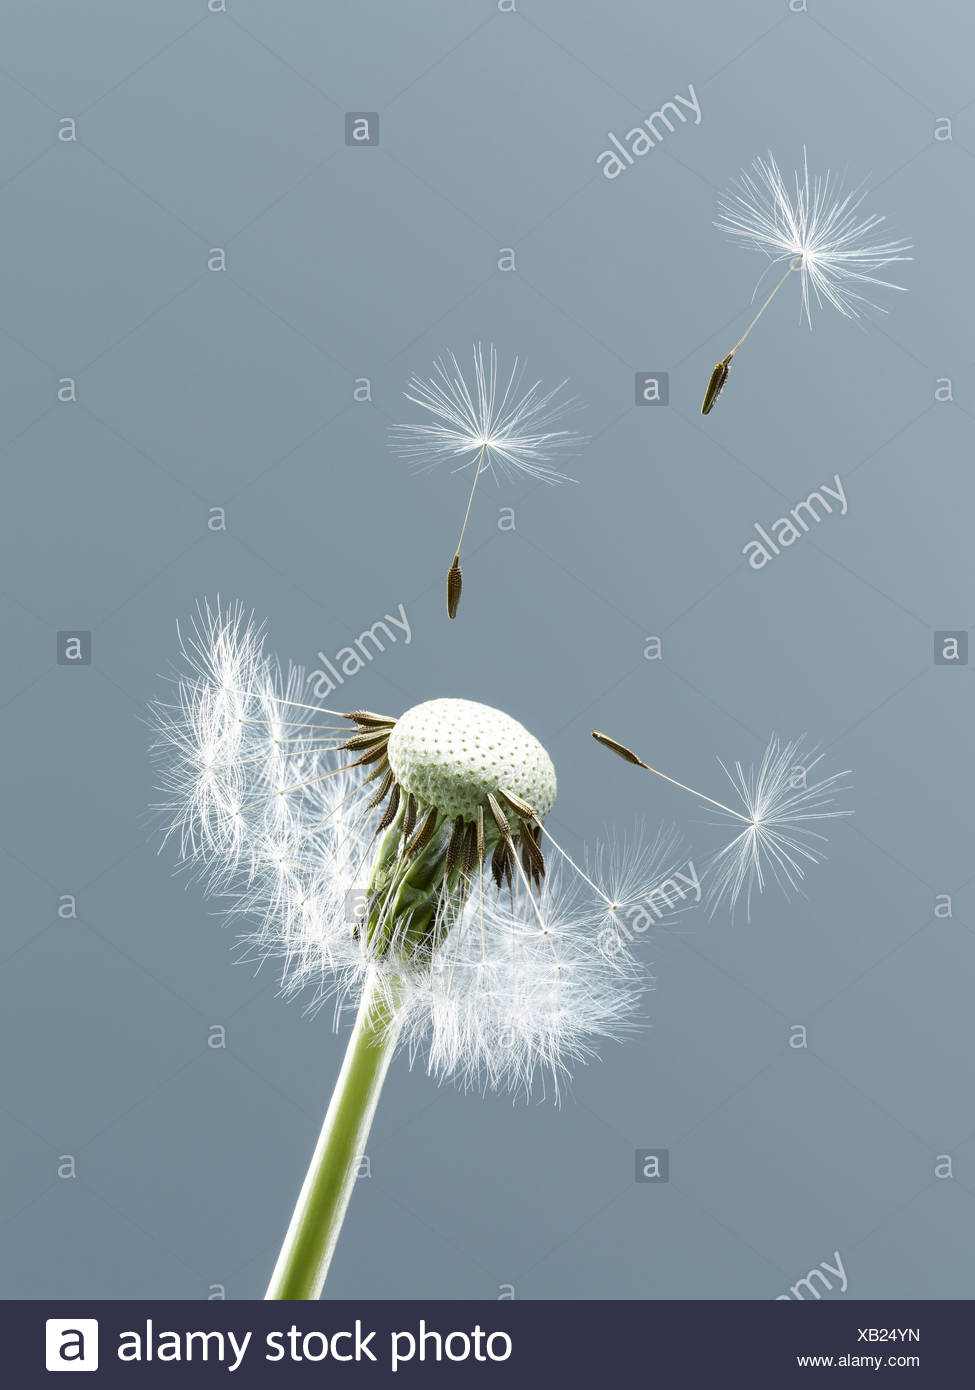 Close up of seeds blowing from dandelion on blue background - Stock Image